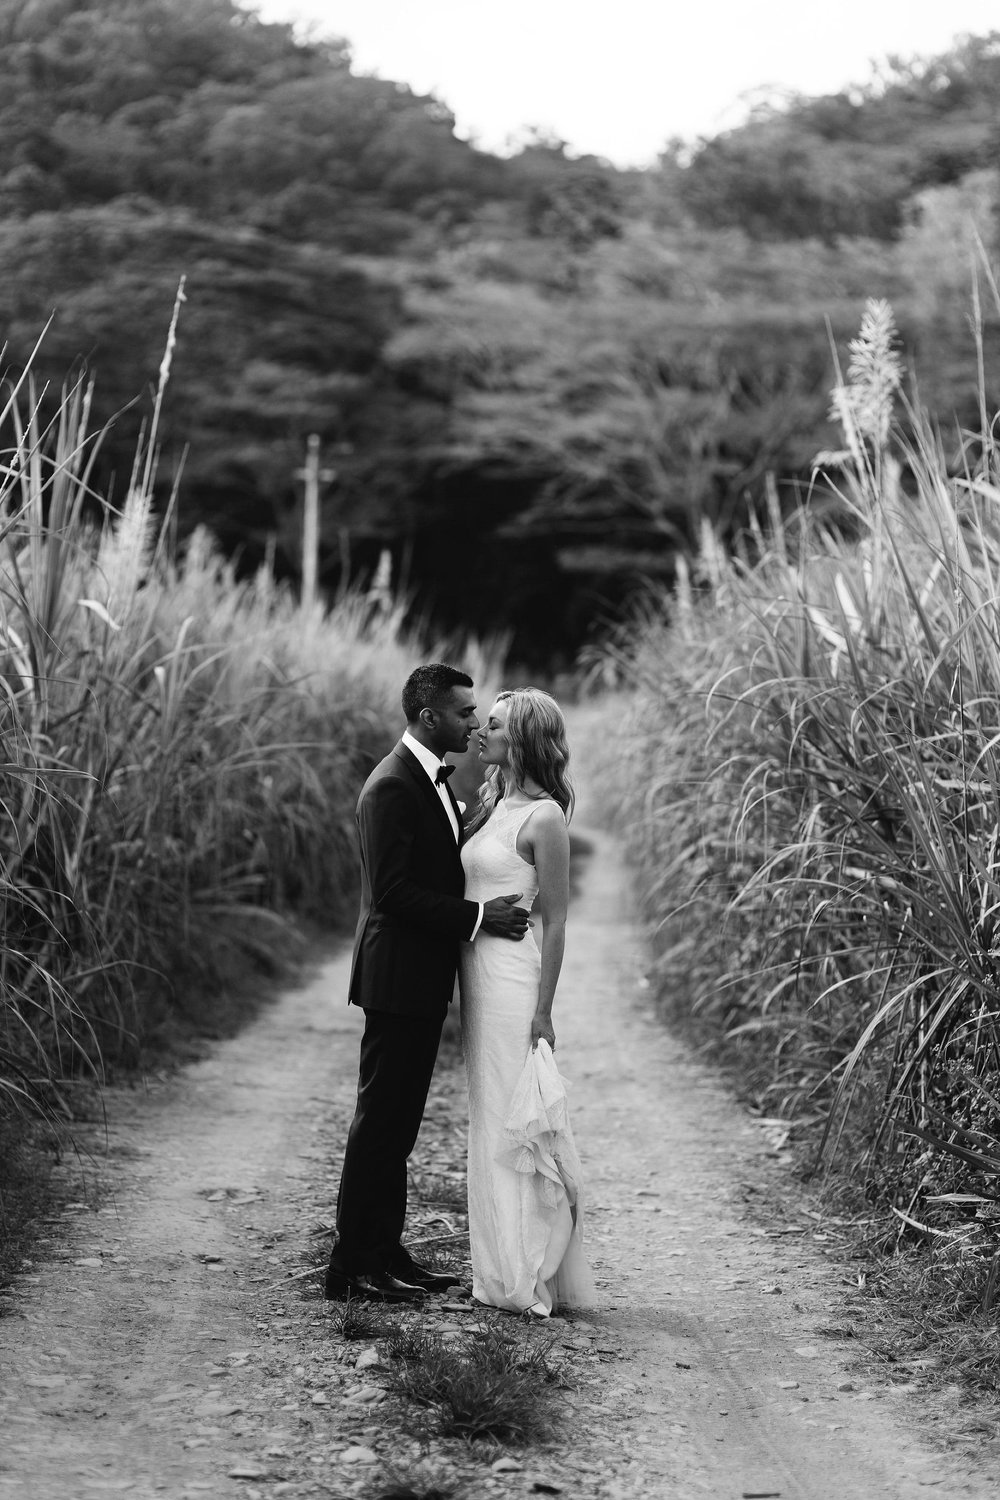 wedding_photography_port_douglas_0168-min.jpg